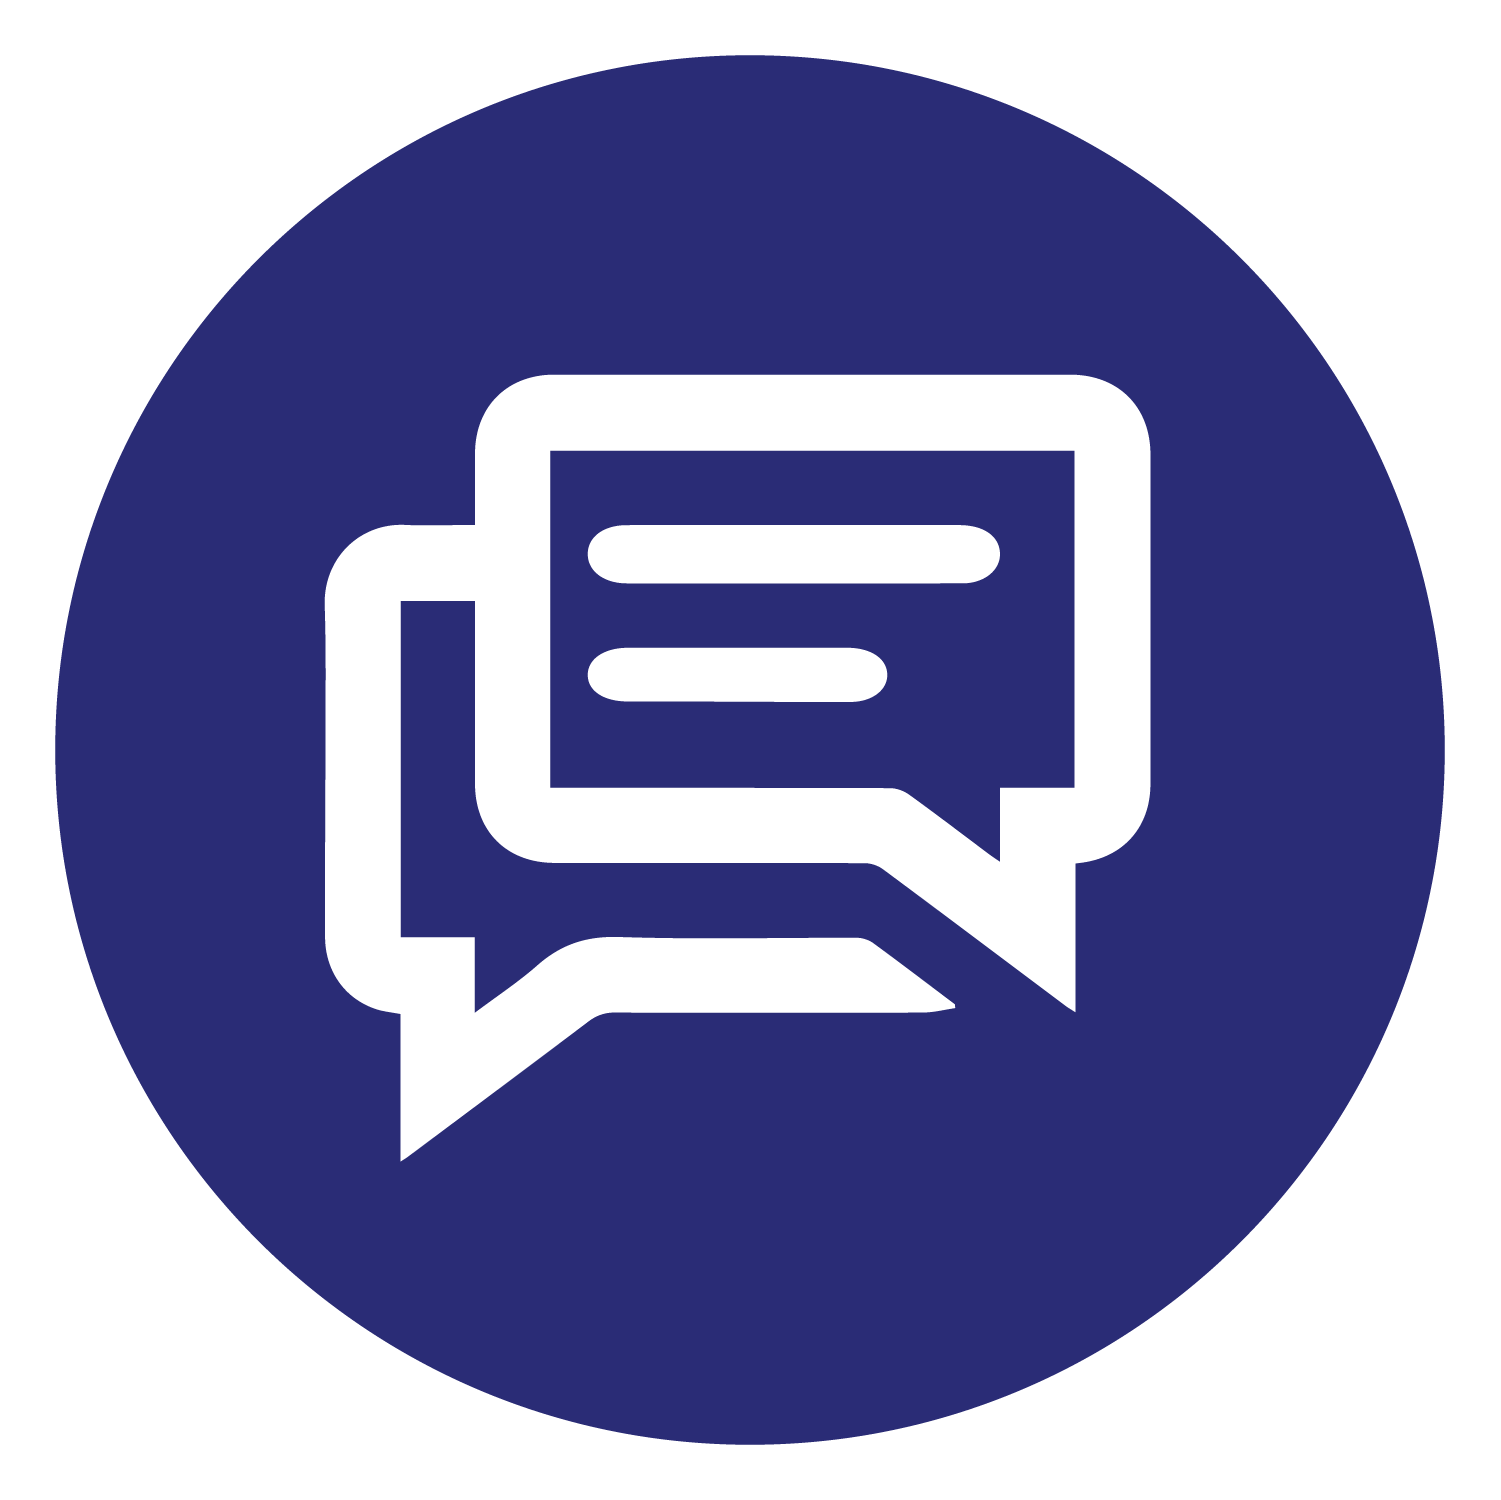 Use our convenient chat feature to get the help you need.